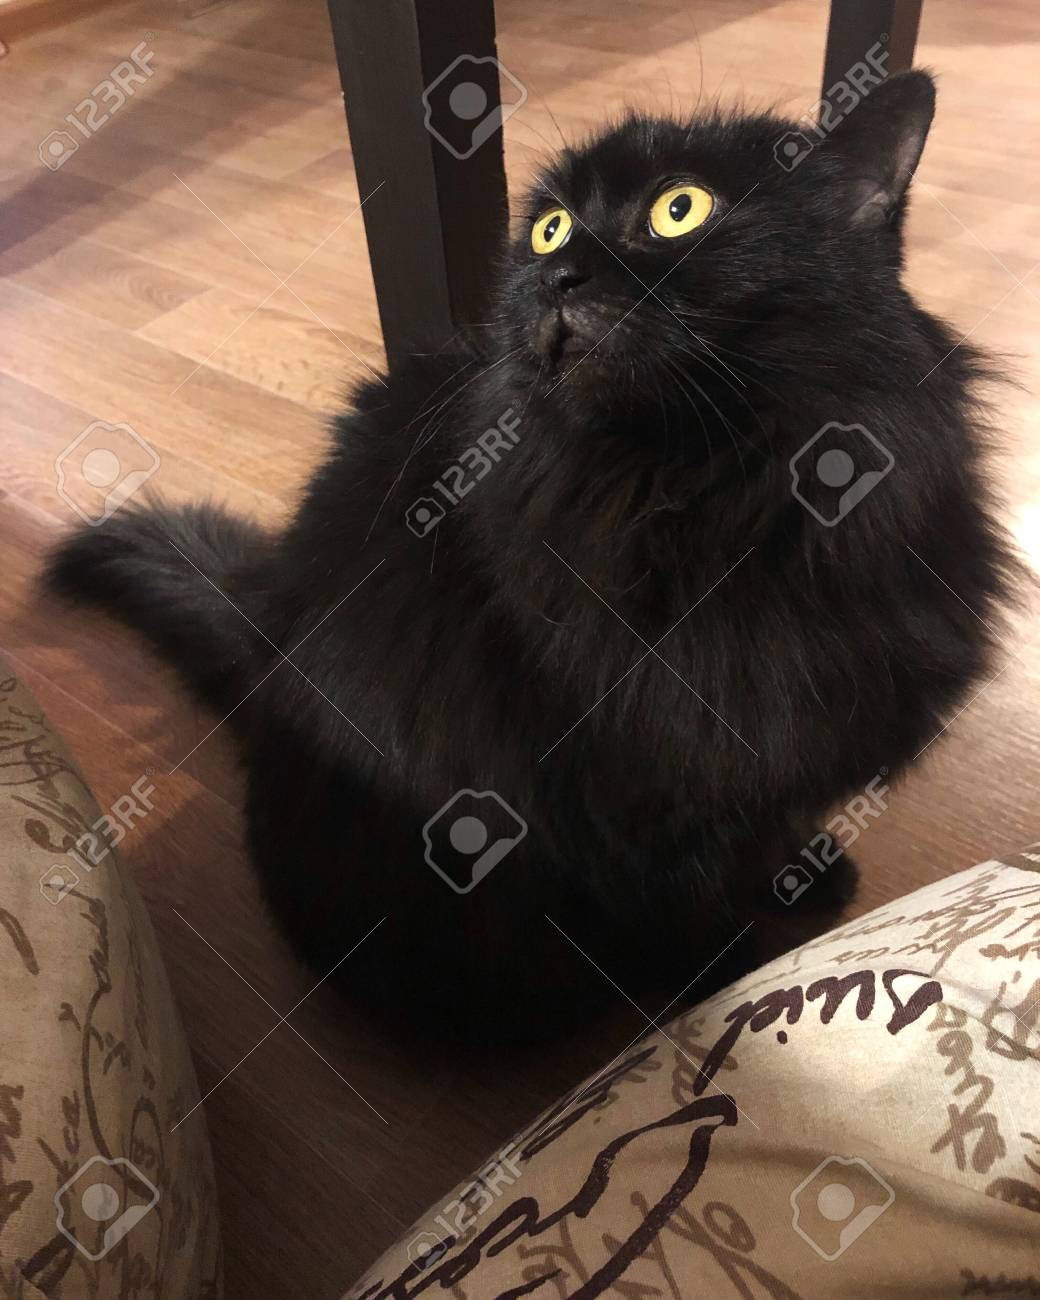 Funny Black Cat On The Floor View Stock Photo Picture And Royalty Free Image Image 114416535